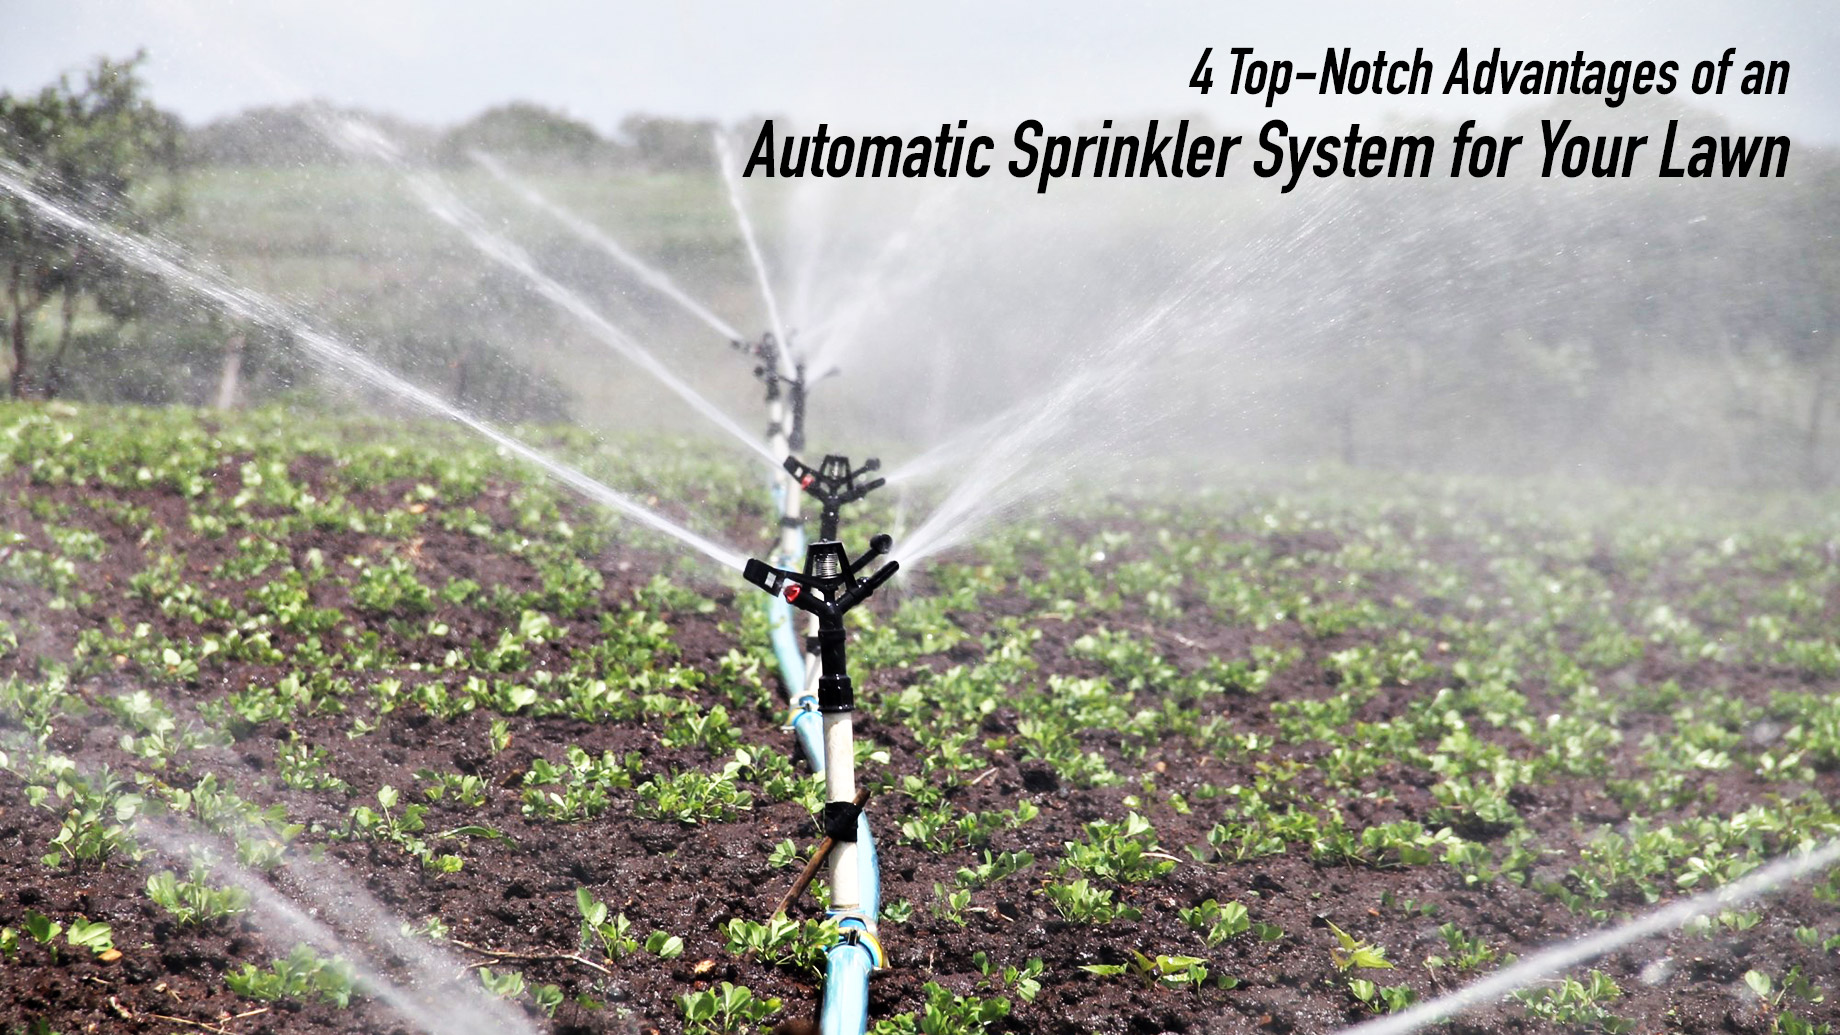 4 Top-Notch Advantages of an Automatic Sprinkler System for Your Lawn